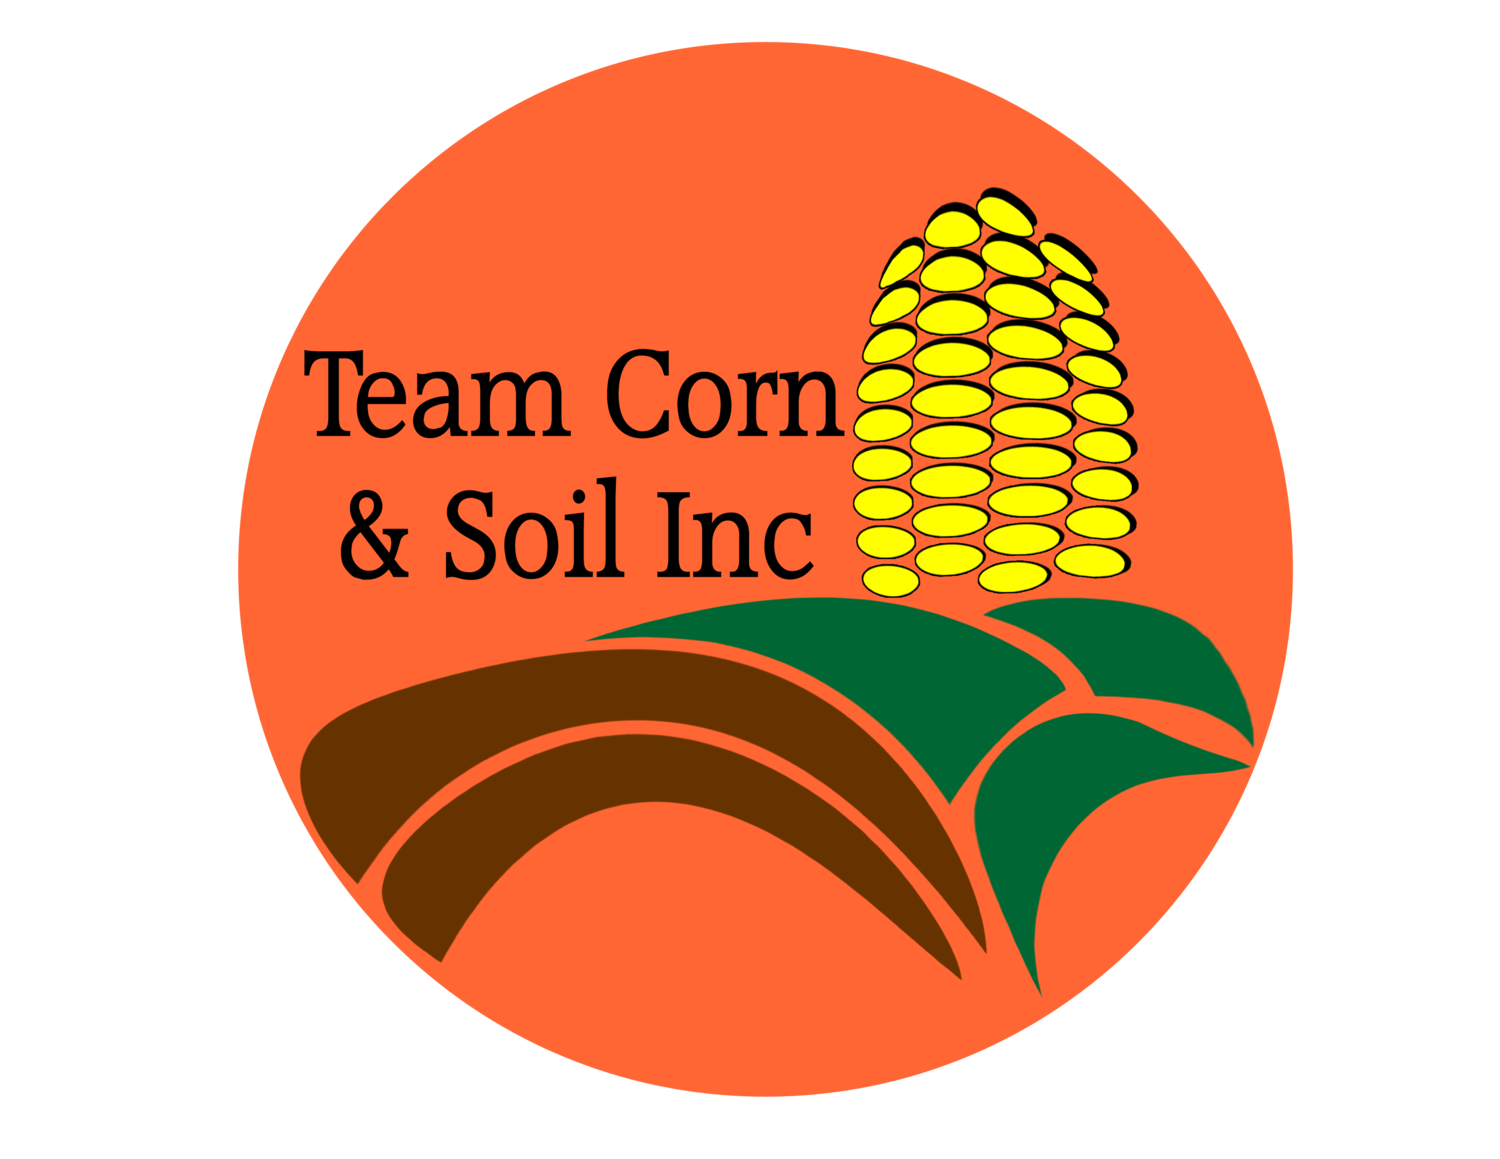 Team Corn & Soil Inc